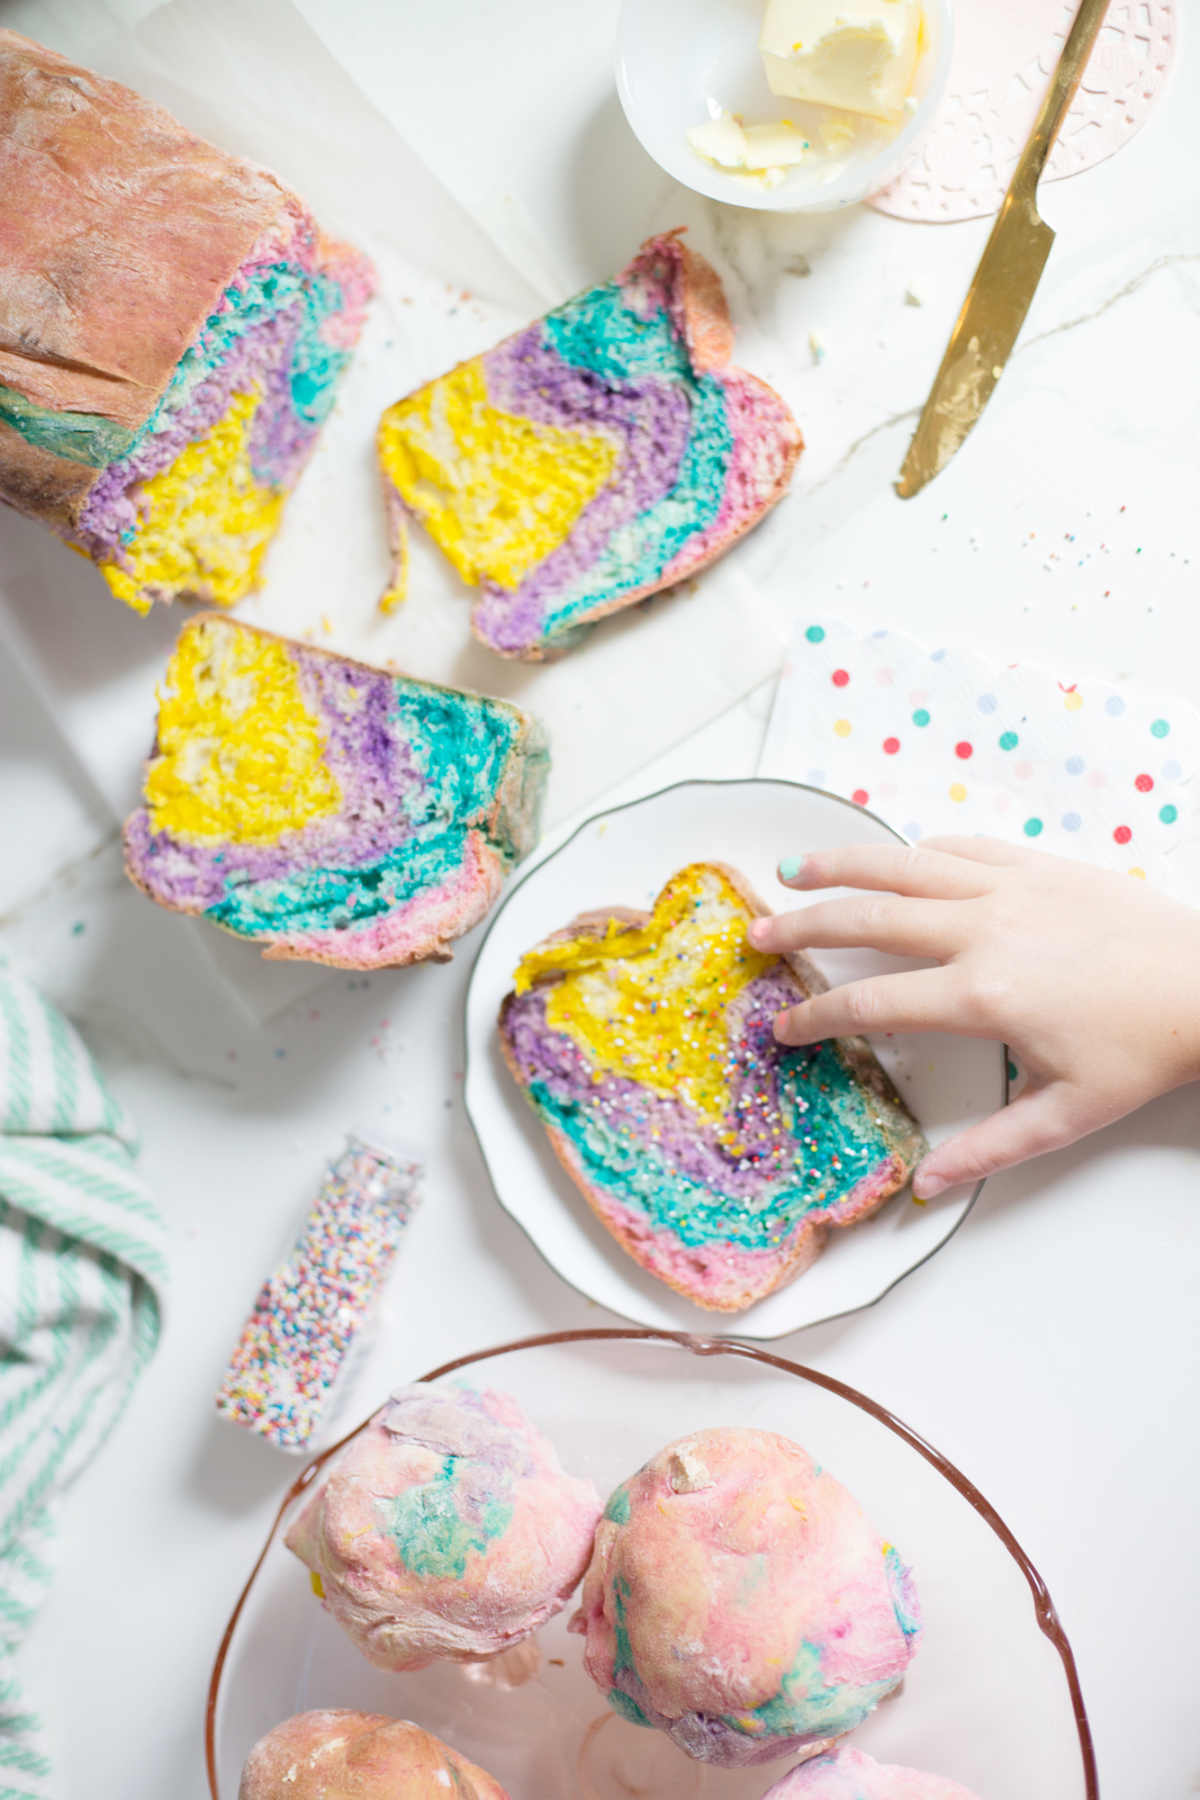 how to make rainbow bread